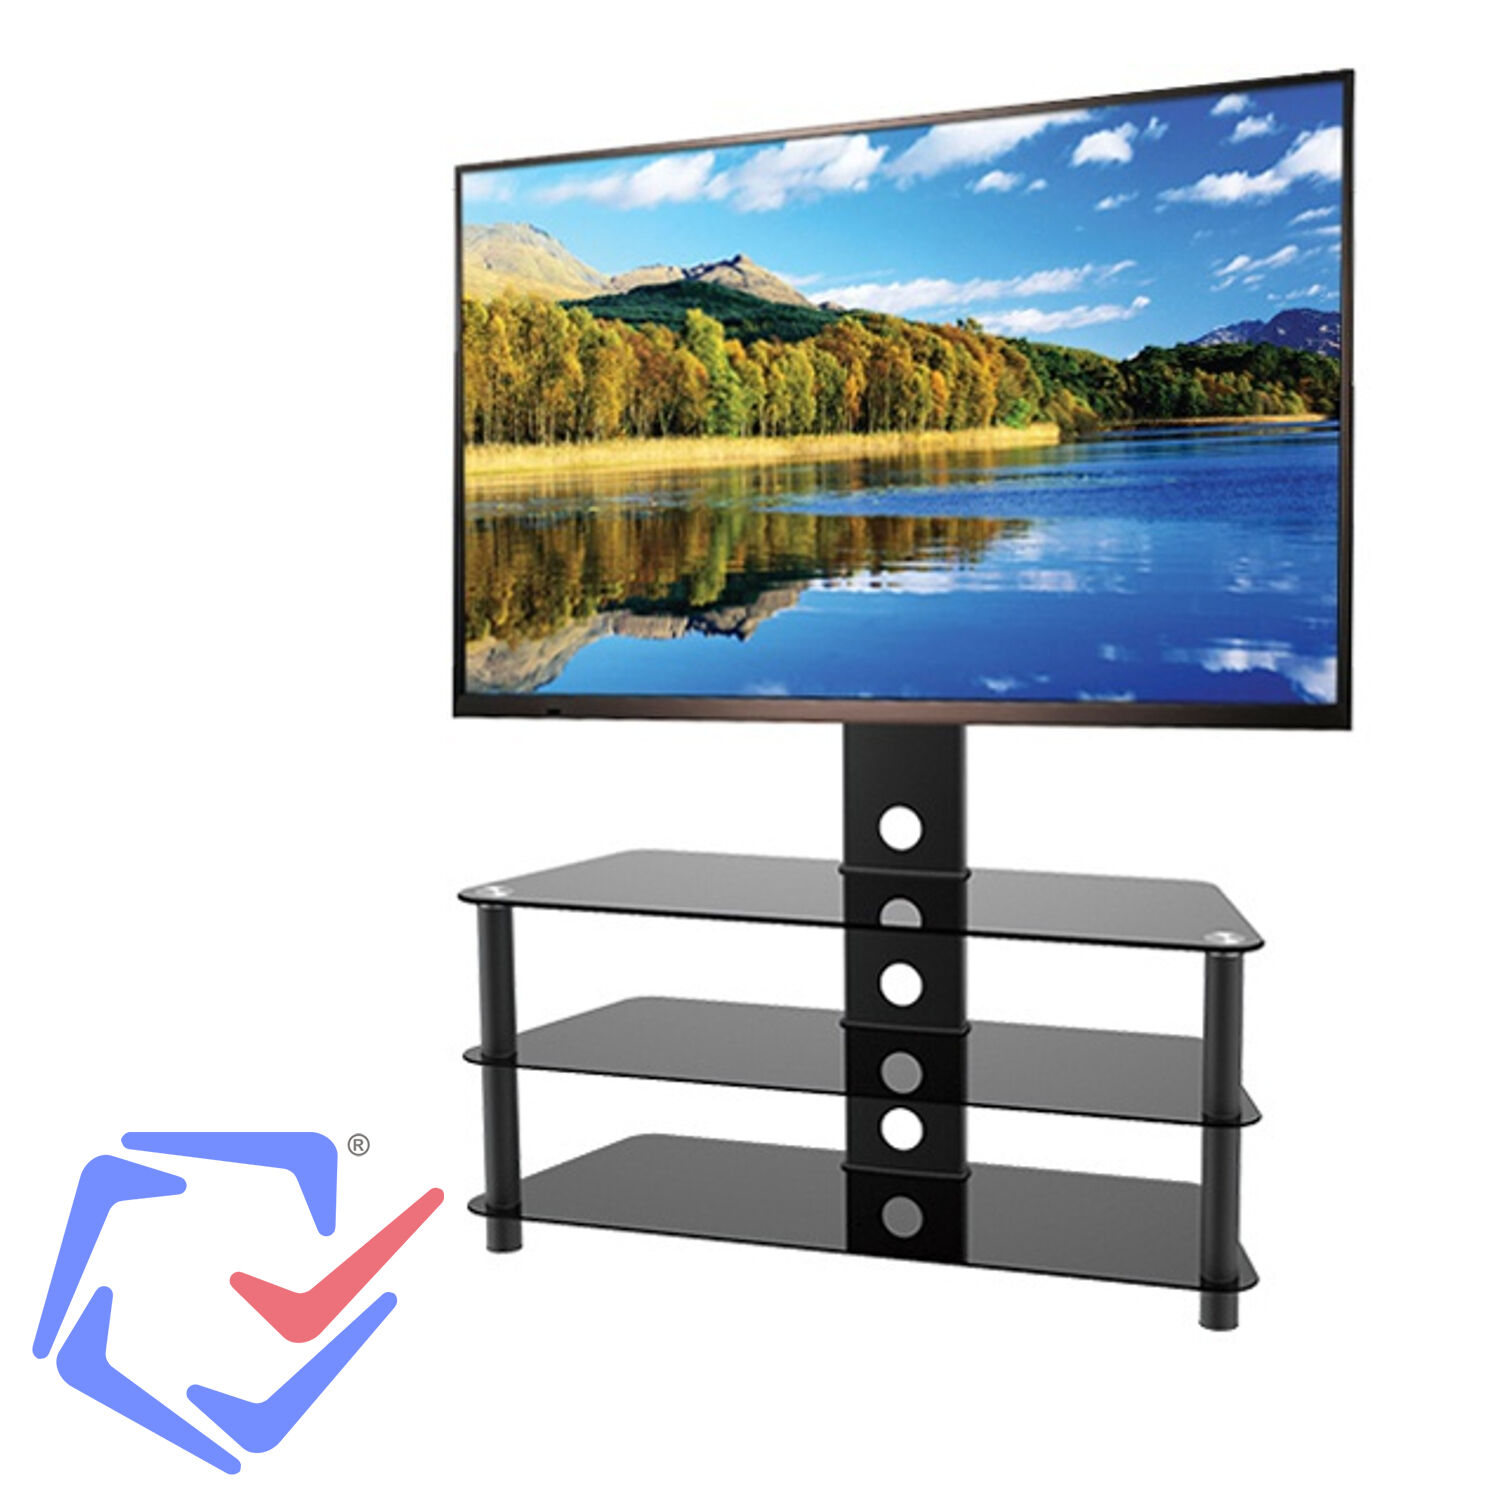 fernseher halterung schrank tv lcd led plasma hifi regale. Black Bedroom Furniture Sets. Home Design Ideas